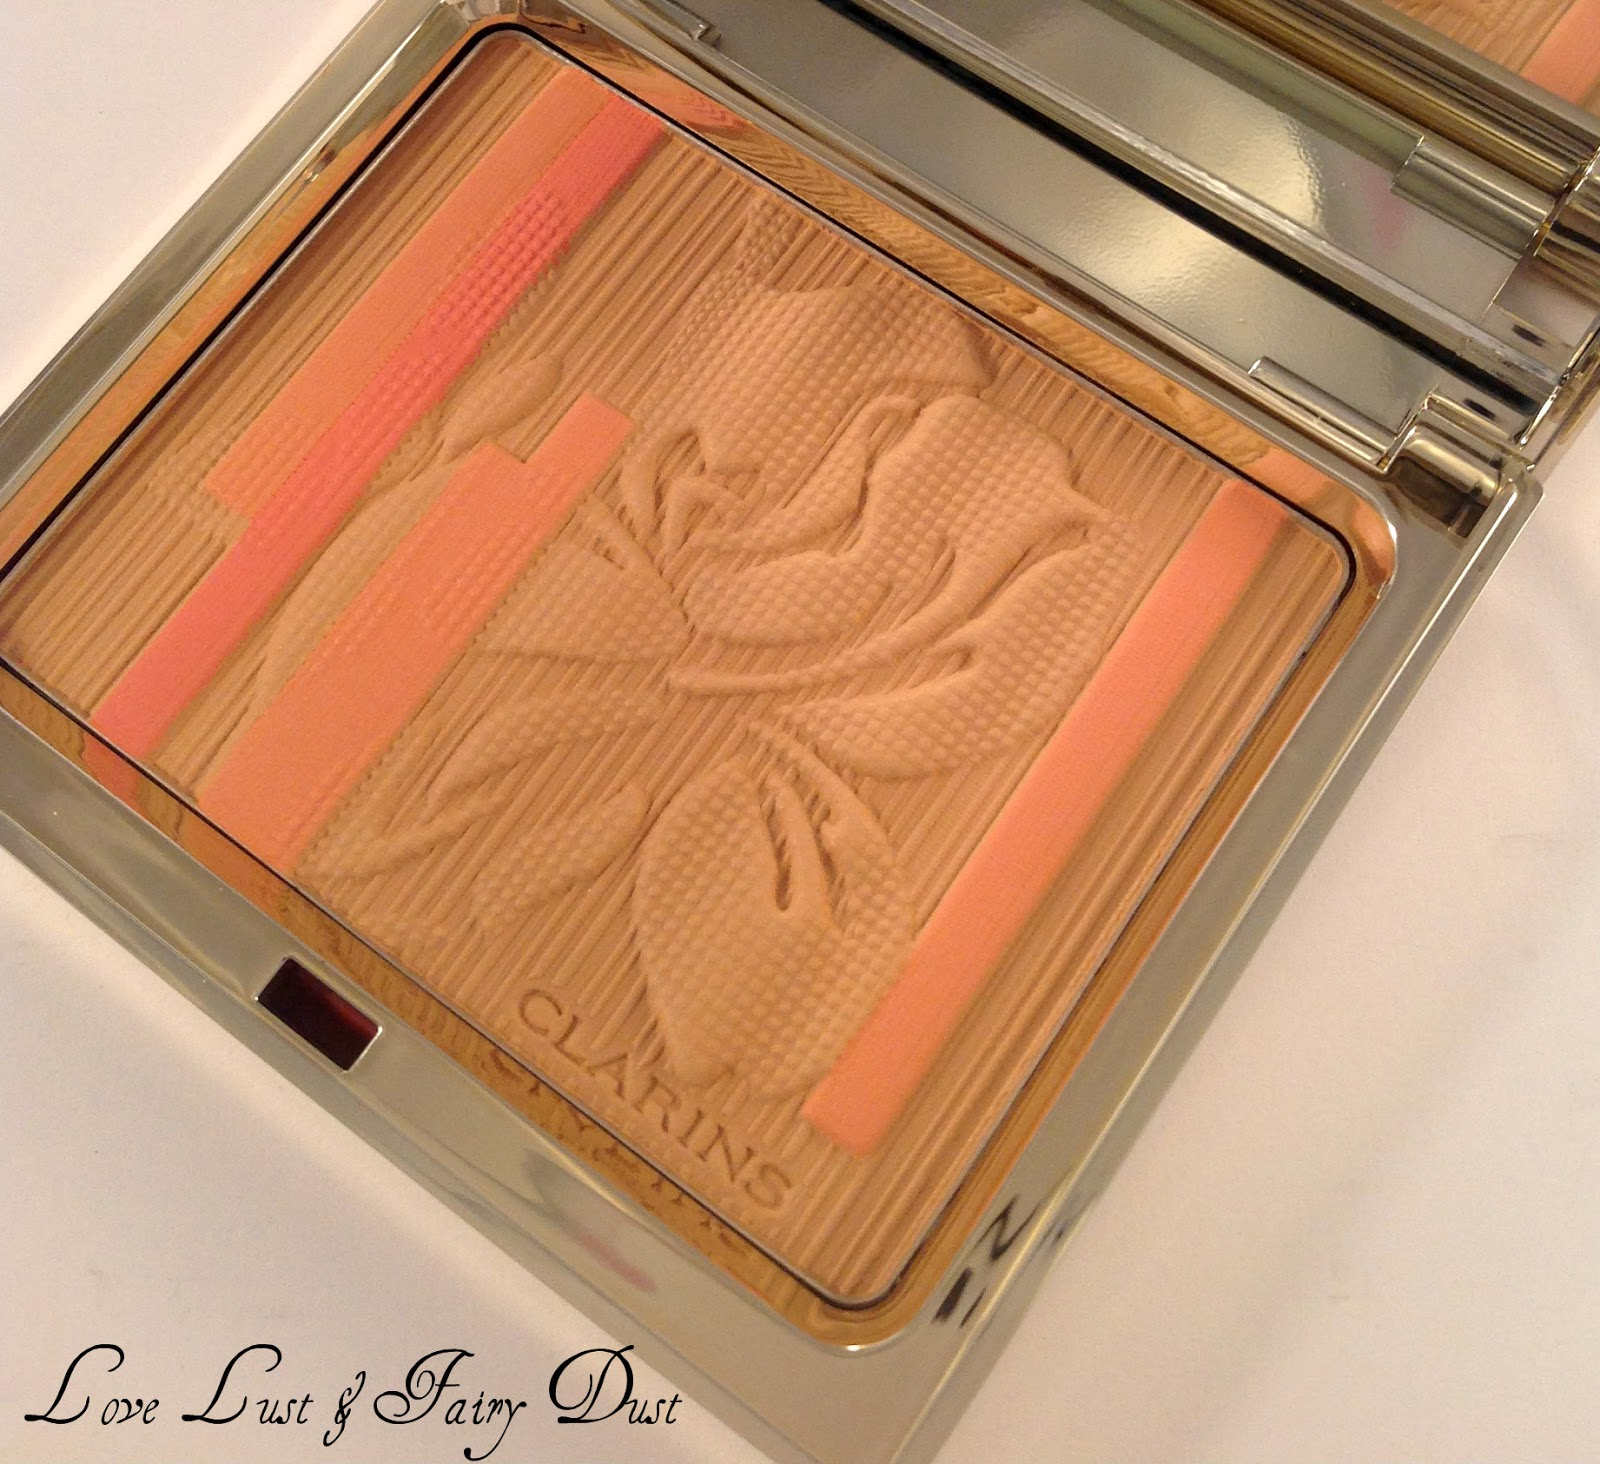 Clarins Limited Edition Face and Blush Powder review